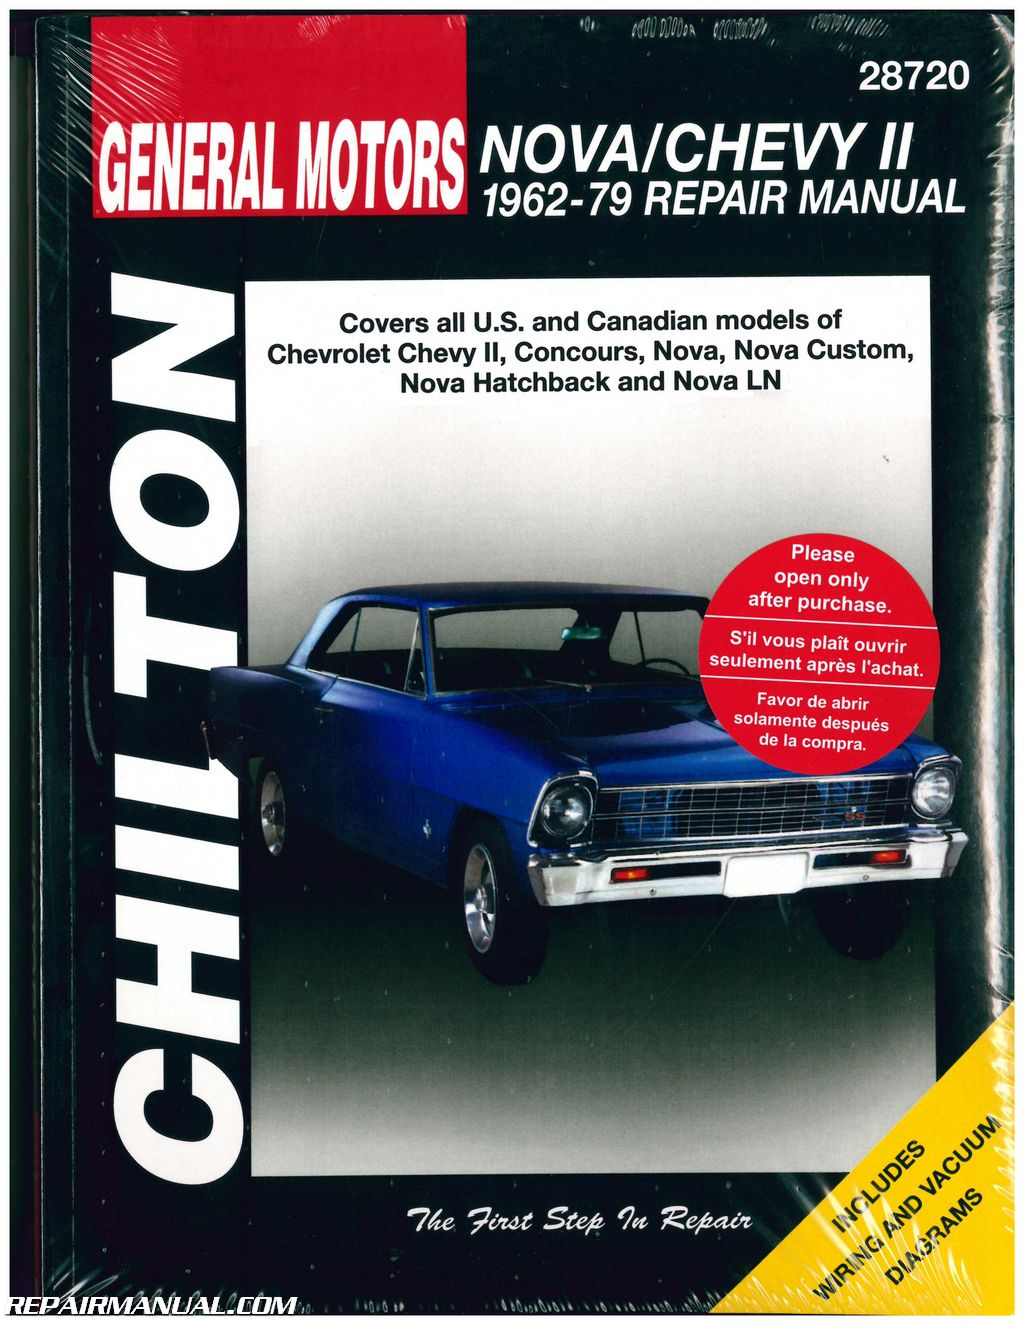 Chilton Chevrolet Nova Chevy II 1962-1979 Repair Manual on 79 chevy horn, 79 chevy radio, 79 chevy engine diagram, 79 chevy charging system, 79 chevy fusible link, 79 chevy distributor diagram, chevy s10 fuse box diagram, 79 chevy flywheel, 79 chevy ignition switch, 1984 chevy fuse box diagram, 79 chevy body, 79 chevy starter wiring, 79 chevy voltage regulator, 79 chevy transmission, 79 chevy fuse box diagram, 1972 chevy truck vacuum diagram, 79 chevy alternator diagram, 79 chevy fuel system diagram, chevy ignition switch diagram, 79 chevy motor,